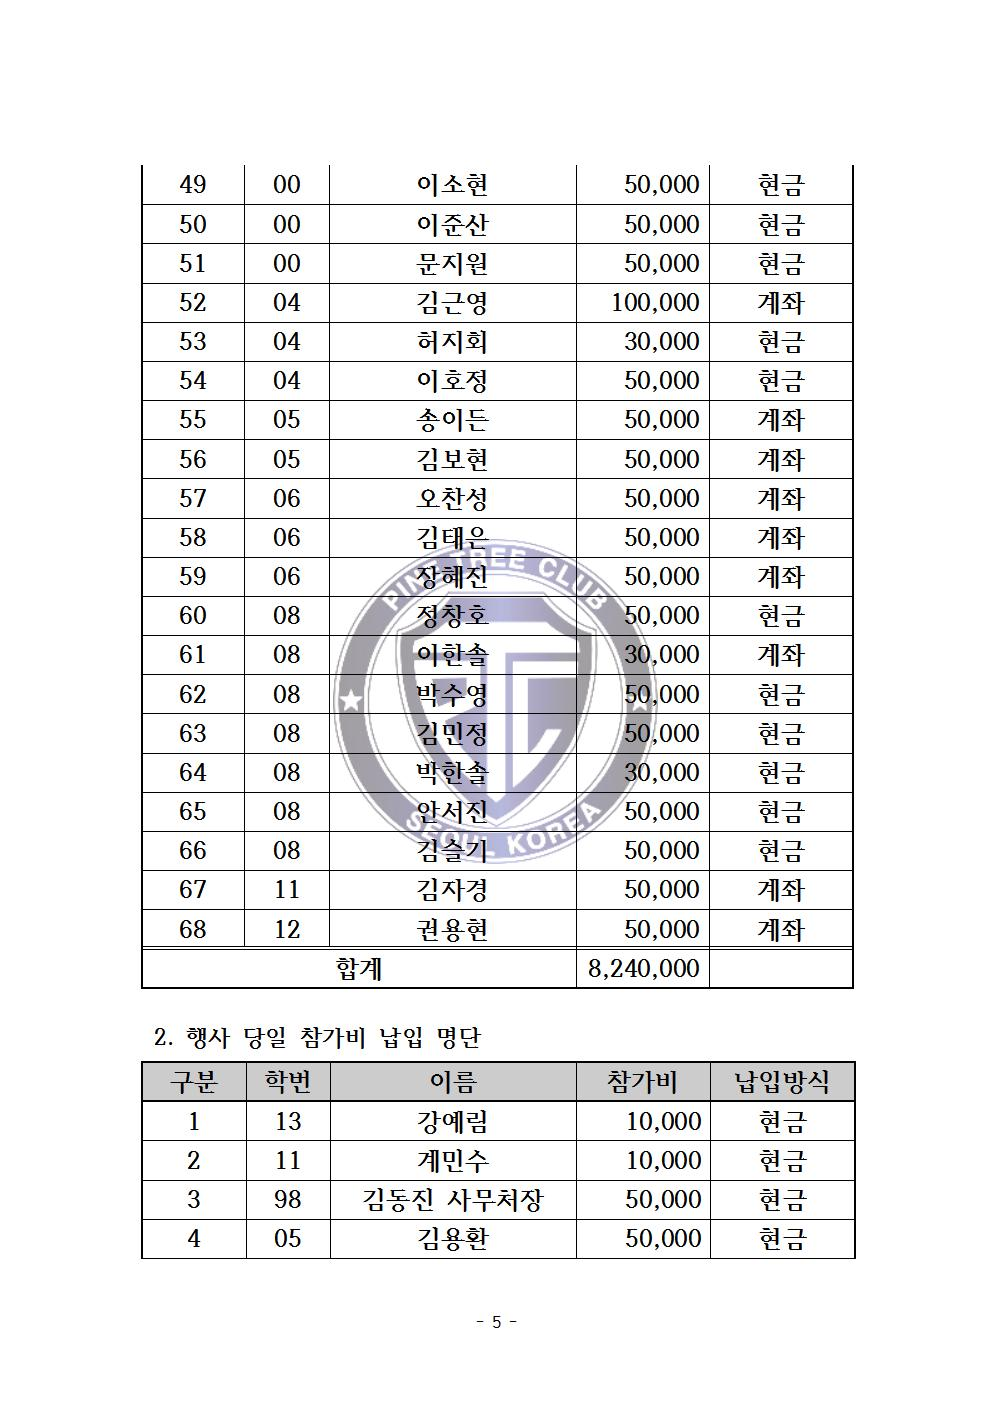 balance-sheet-58th-sptc-anniversary005.jpg